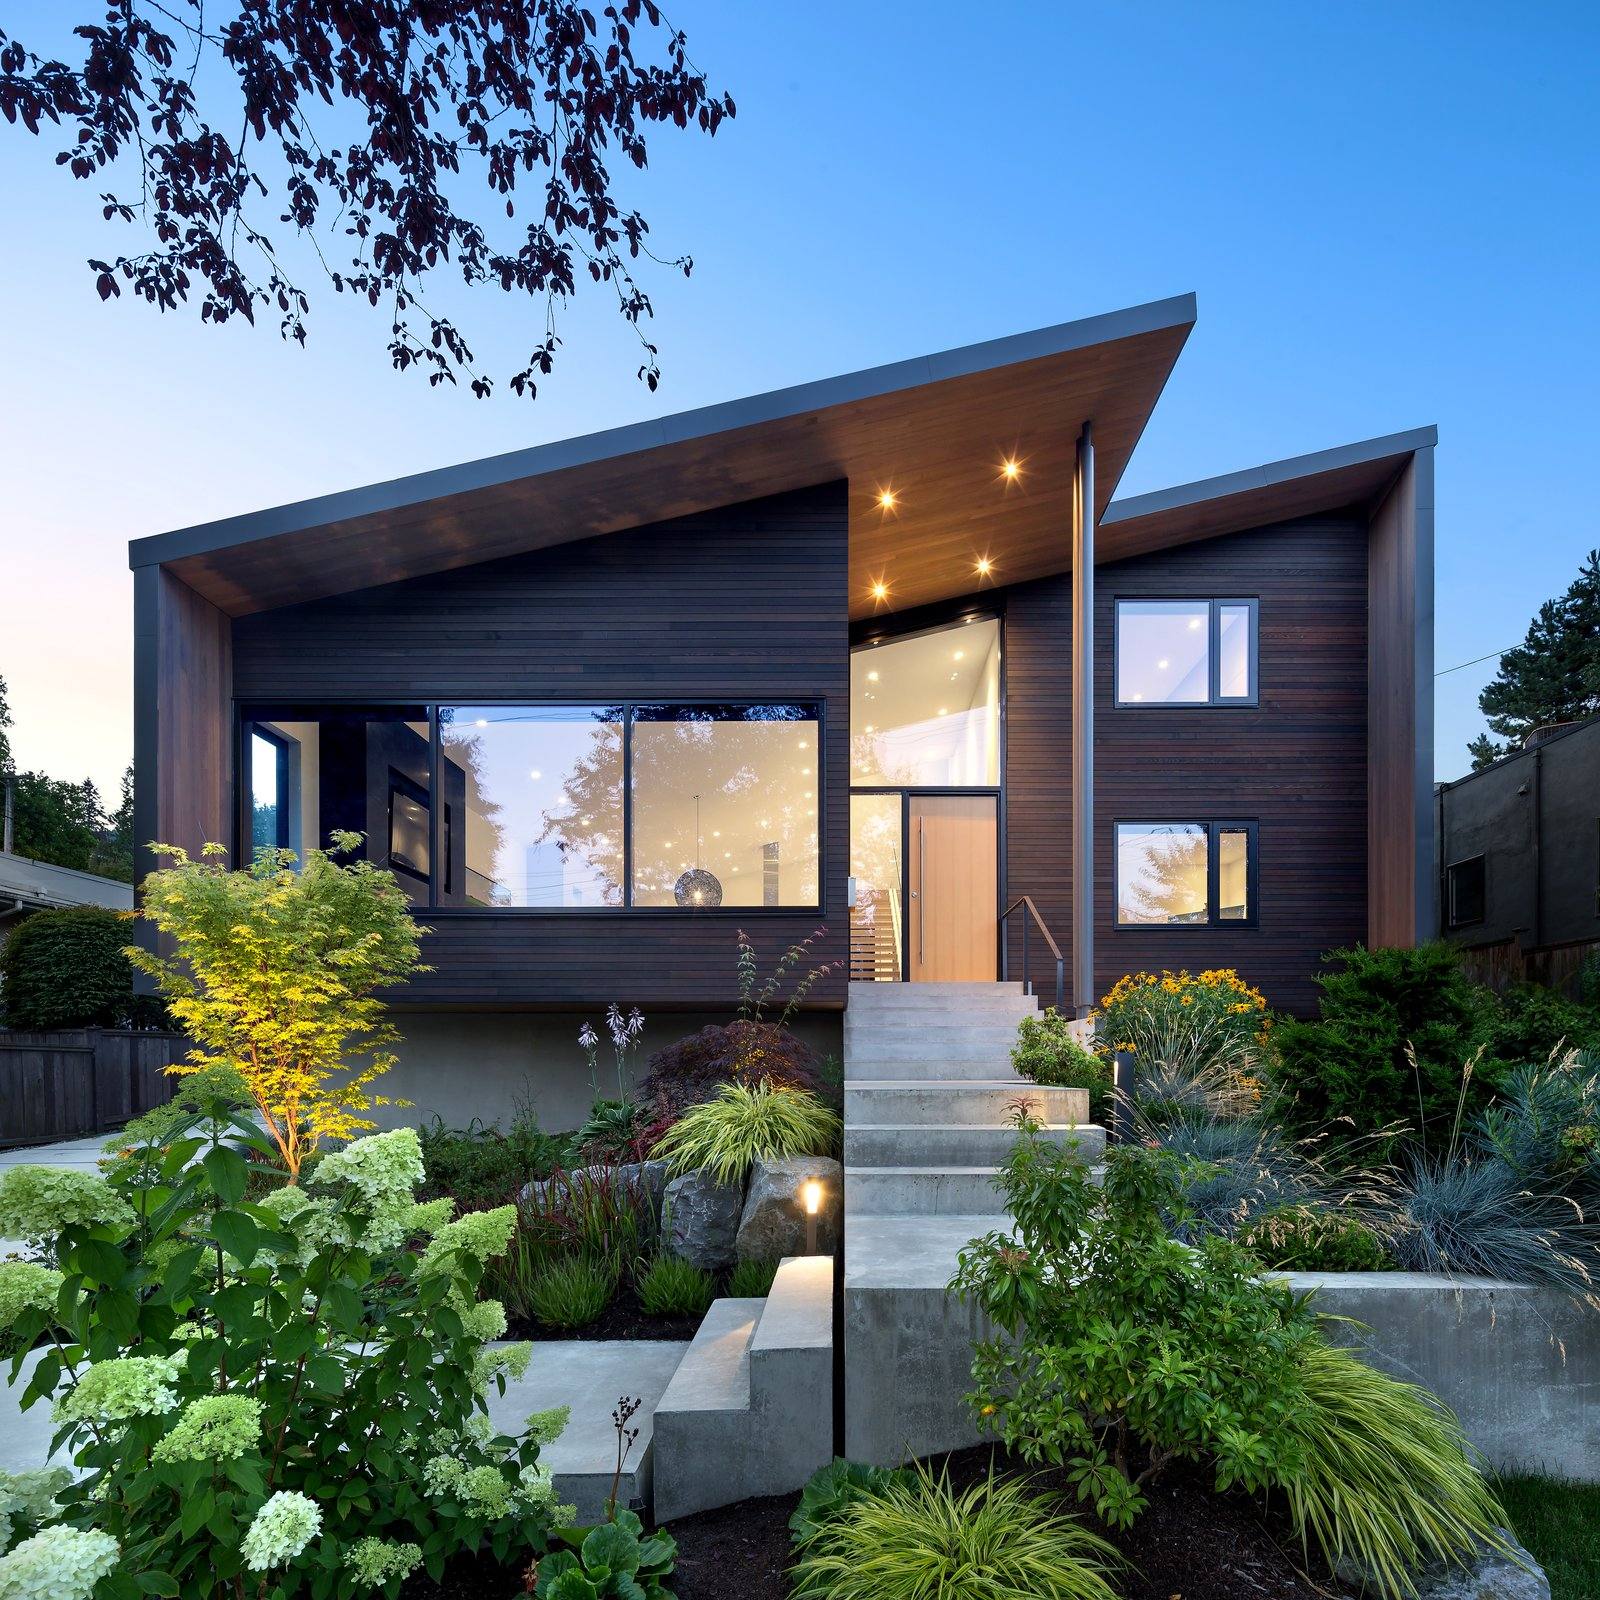 The Edge Apartments Vancouver: An Ordinary Suburban Home In Vancouver Is Given A Modern